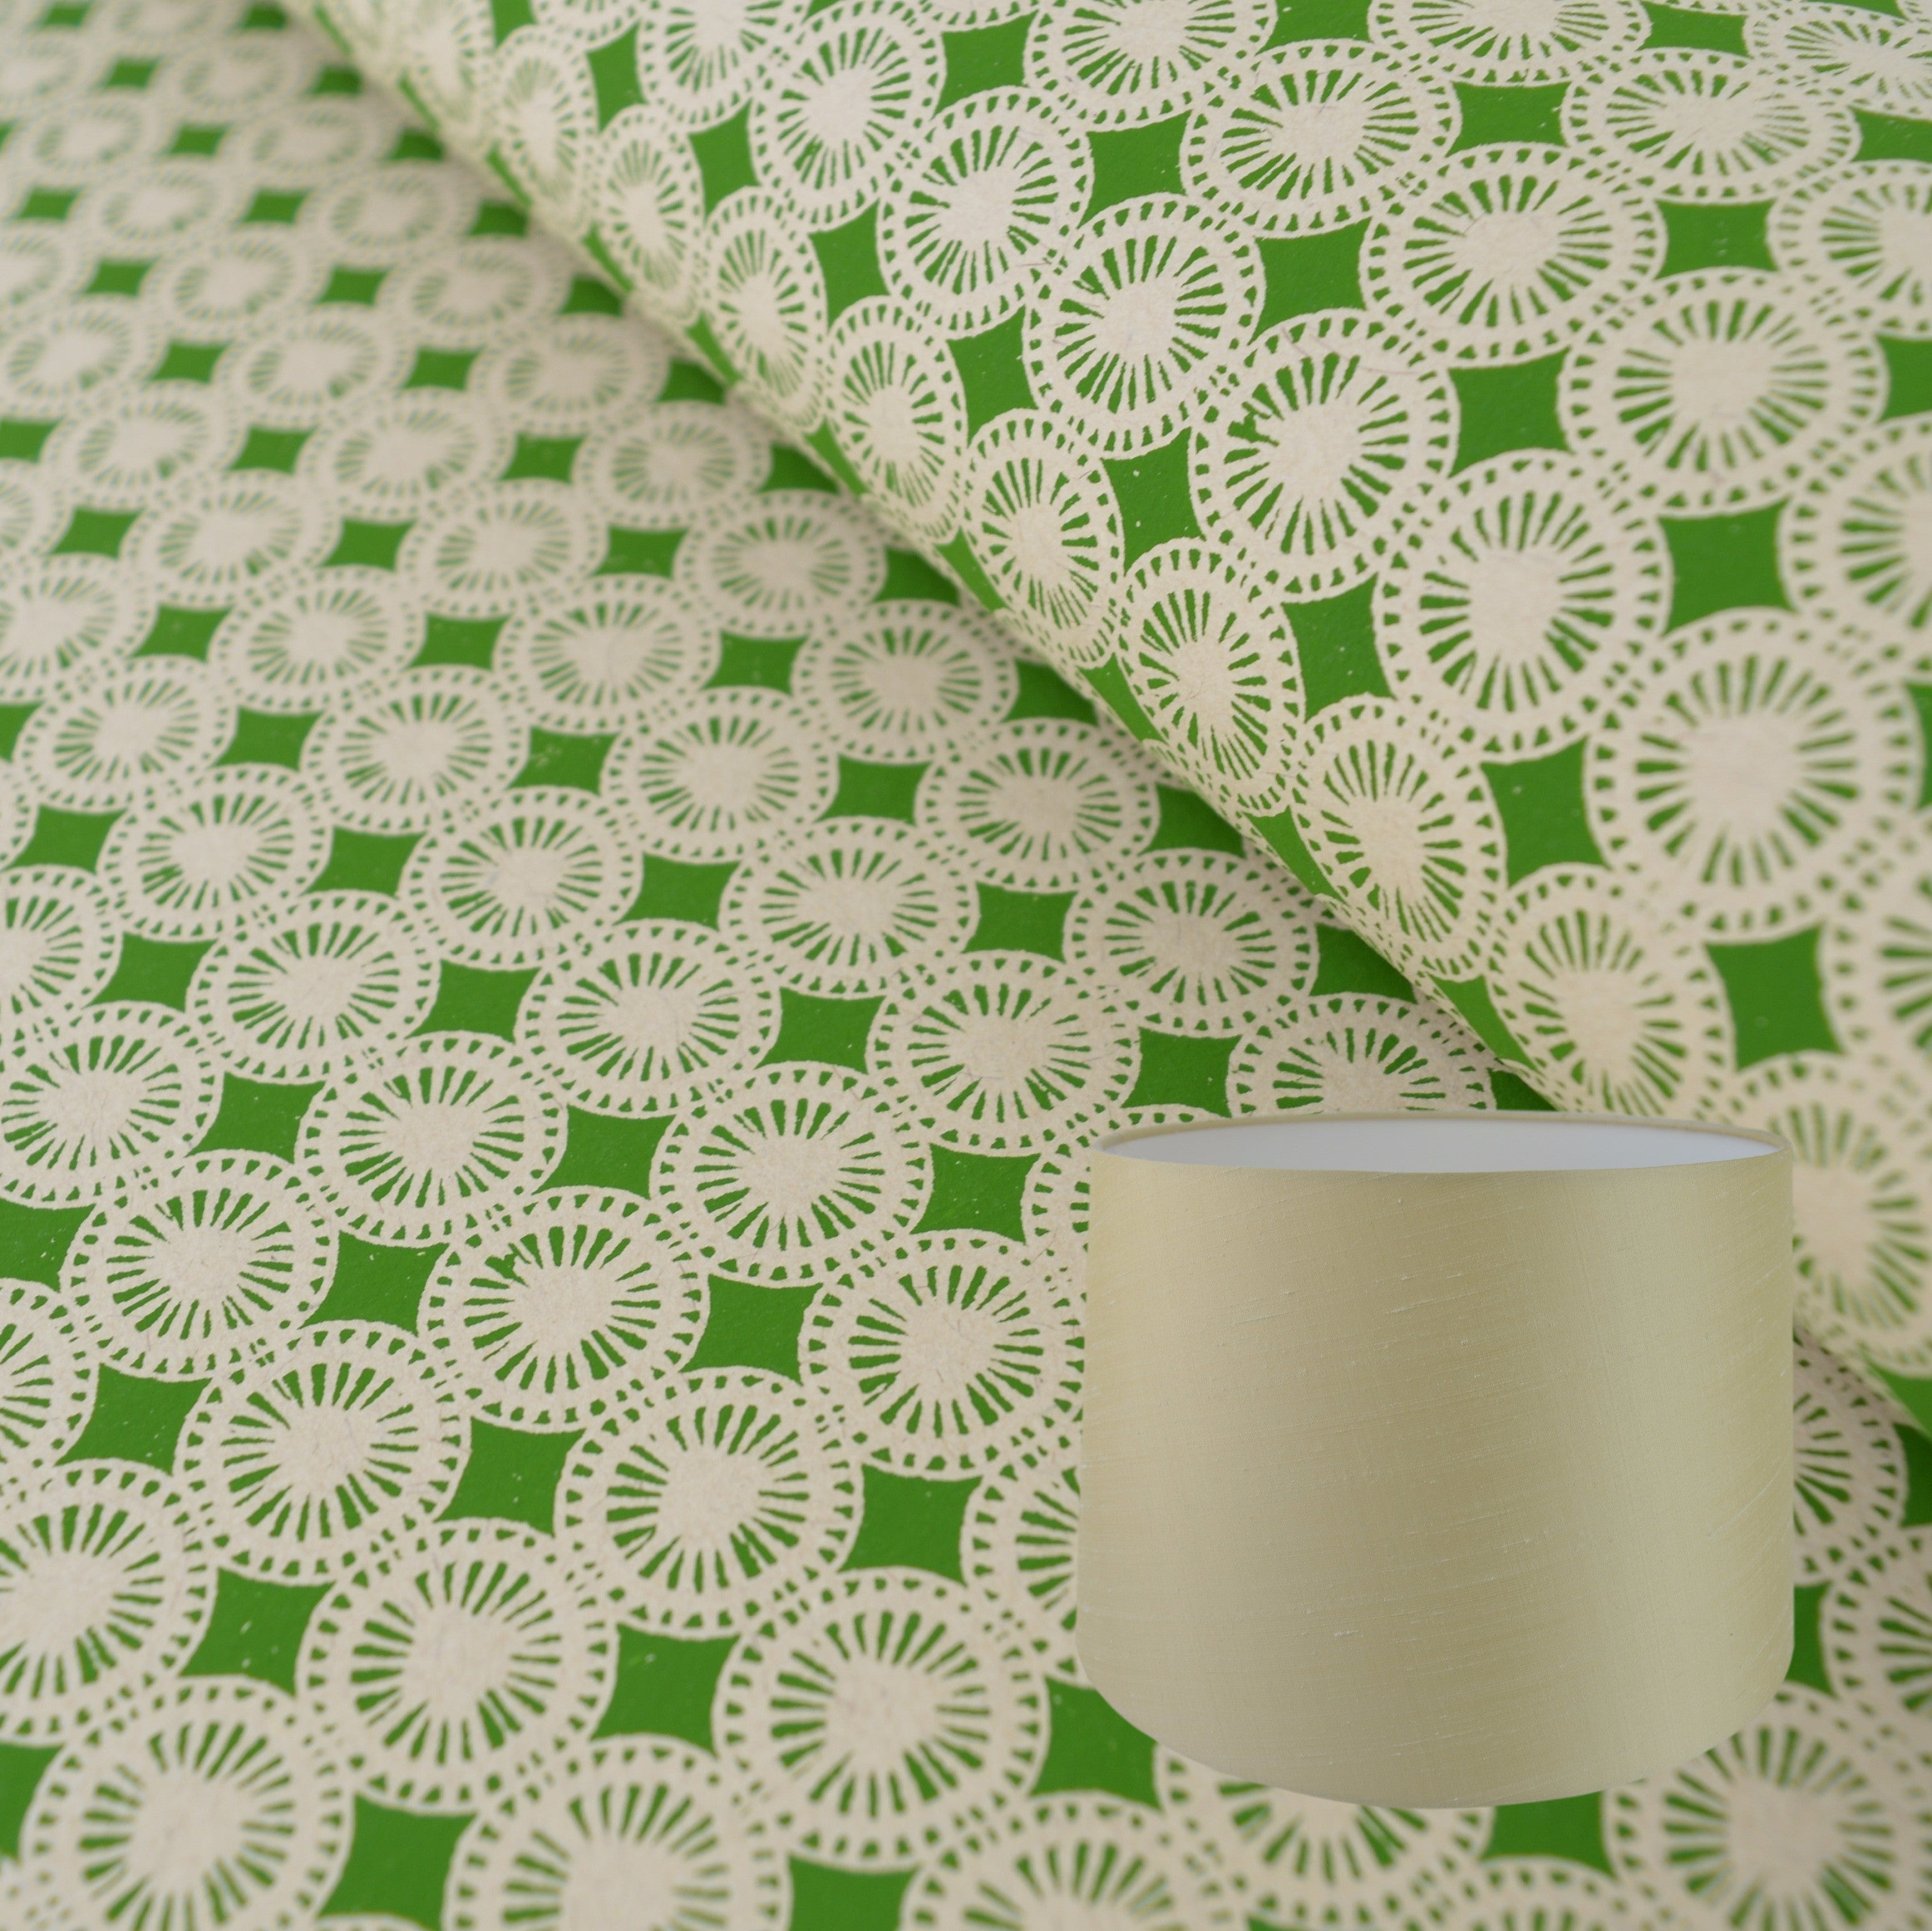 Munro and Kerr green hand printed dandelion paper for a tapered drum lampshade